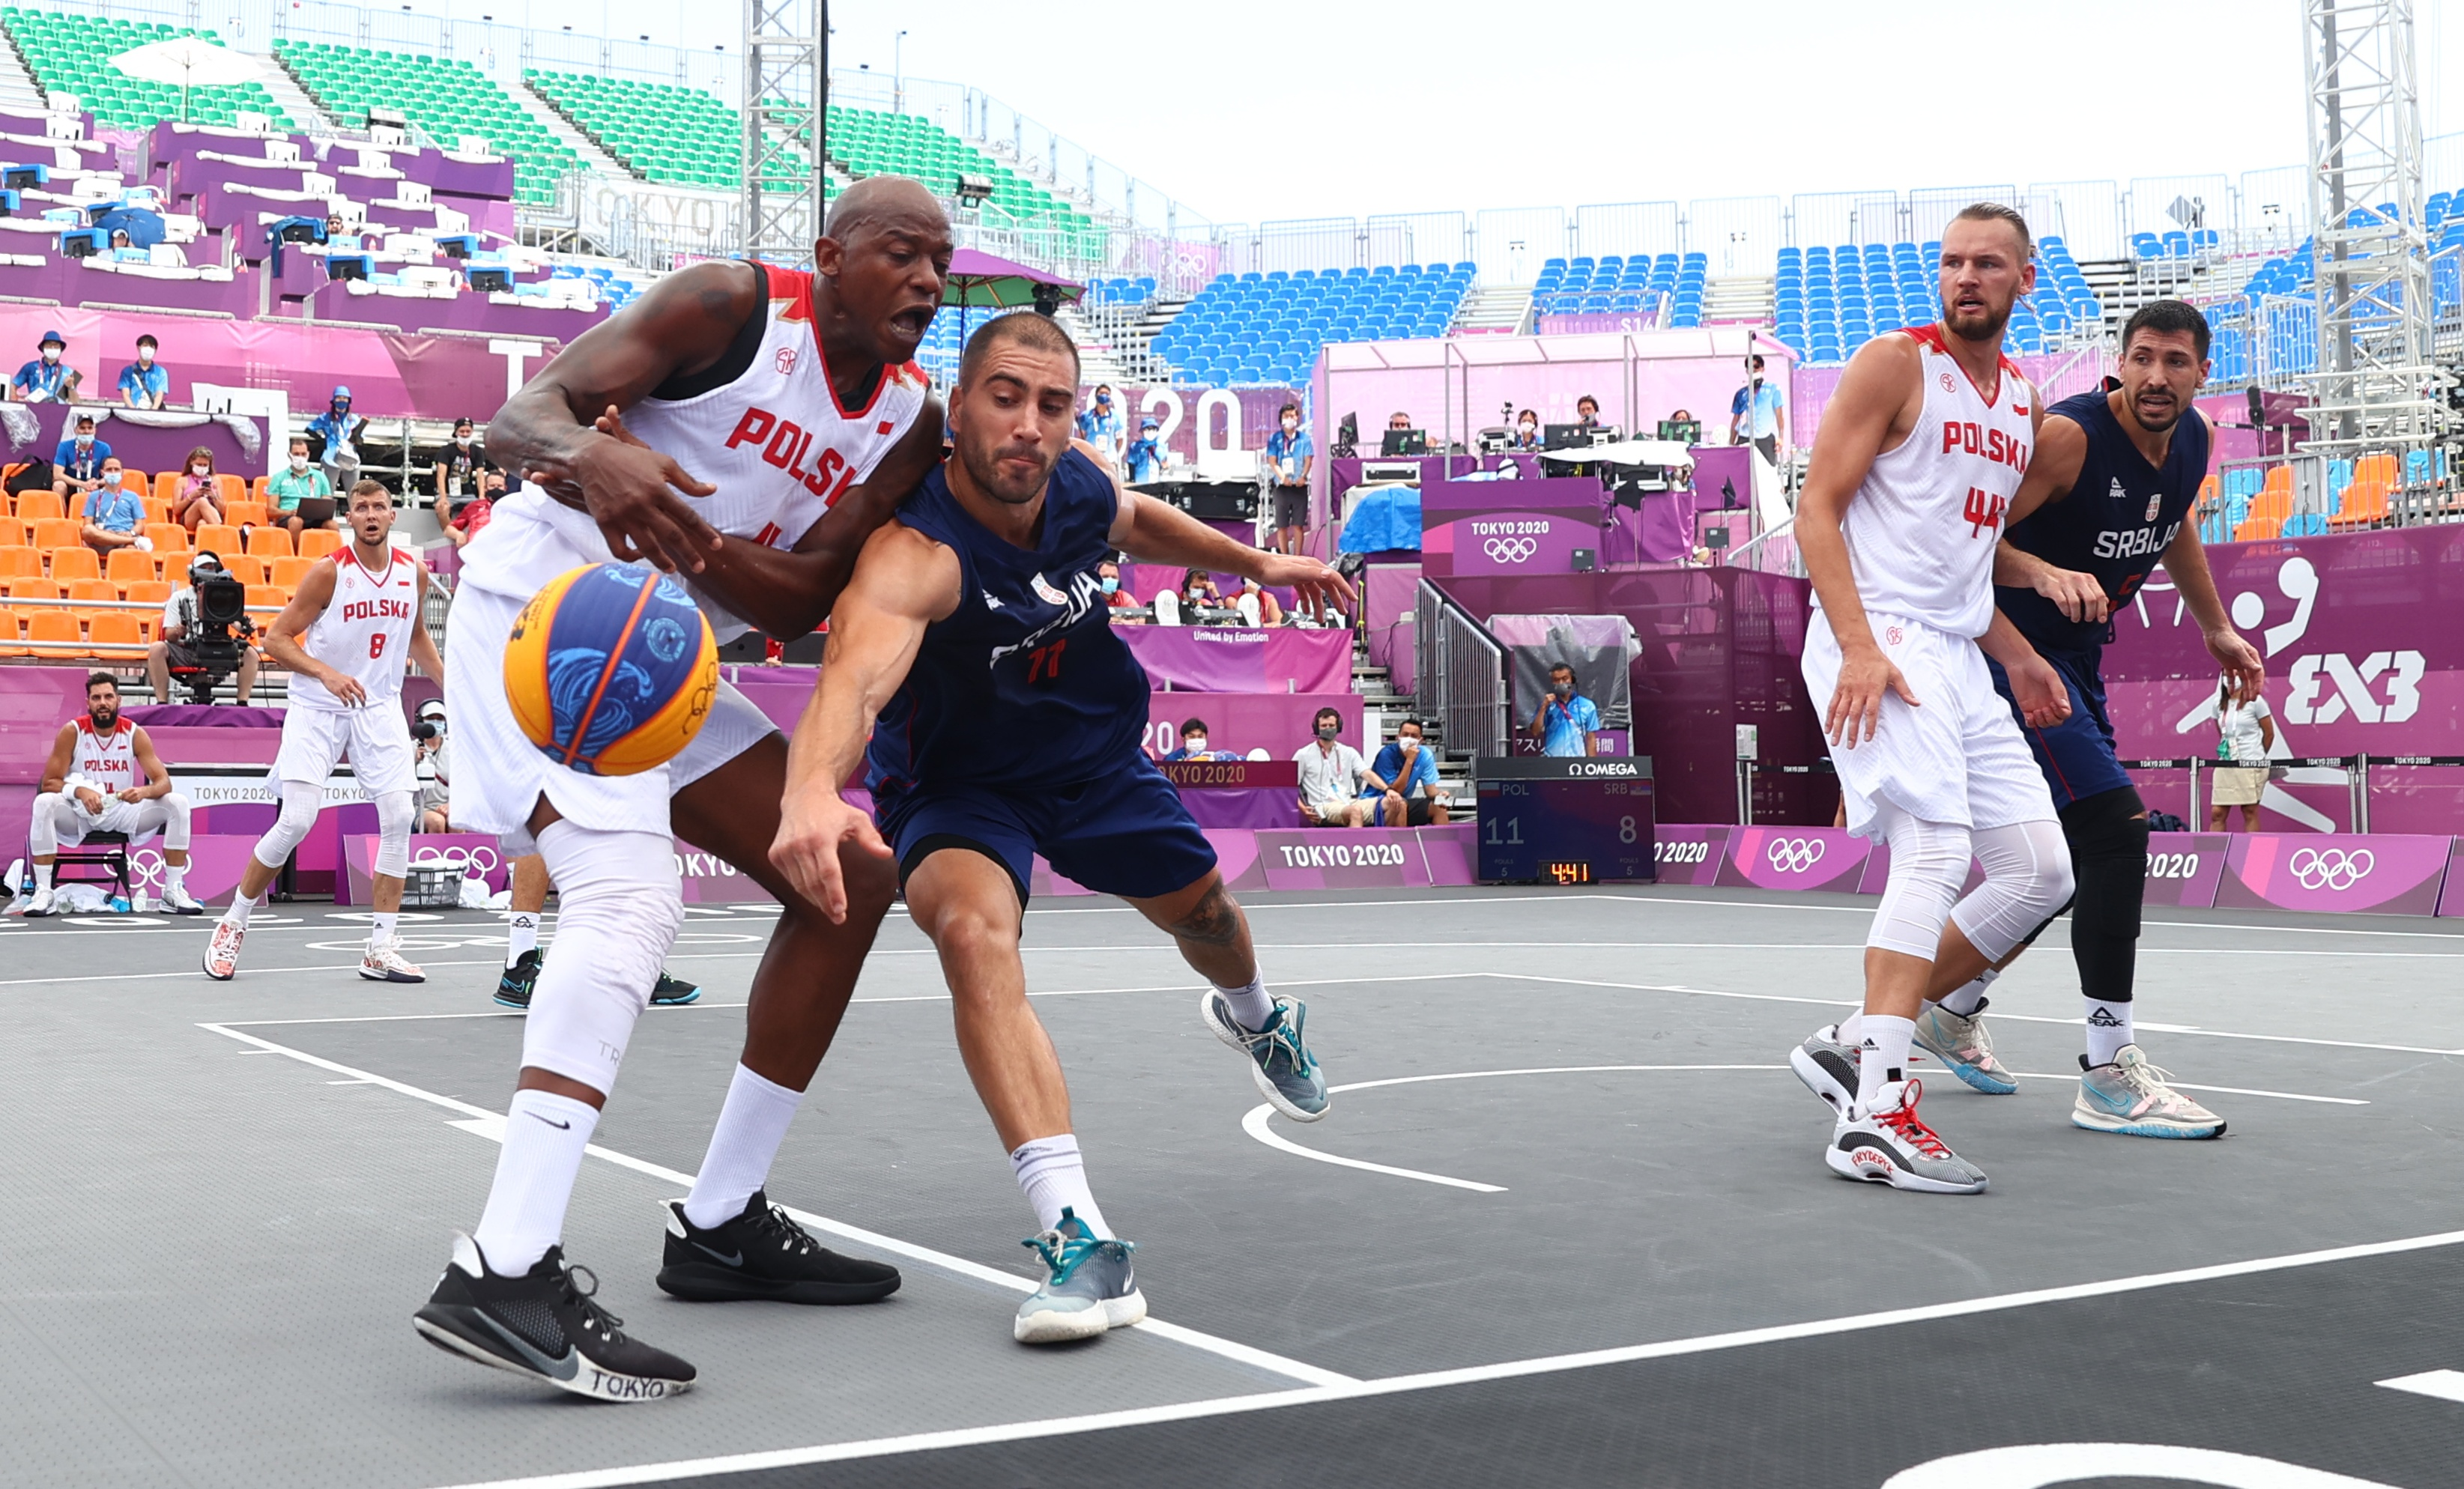 Tokyo 2020 Olympics - Basketball 3x3 - Men - Pool A - Poland v Serbia - Aomi Urban Sports Park, Tokyo, Japan - July 25, 2021.Michael Hicks of Poland  in action with Mihailo Vasic of Serbia  during the match. REUTERS/Andrew Boyers